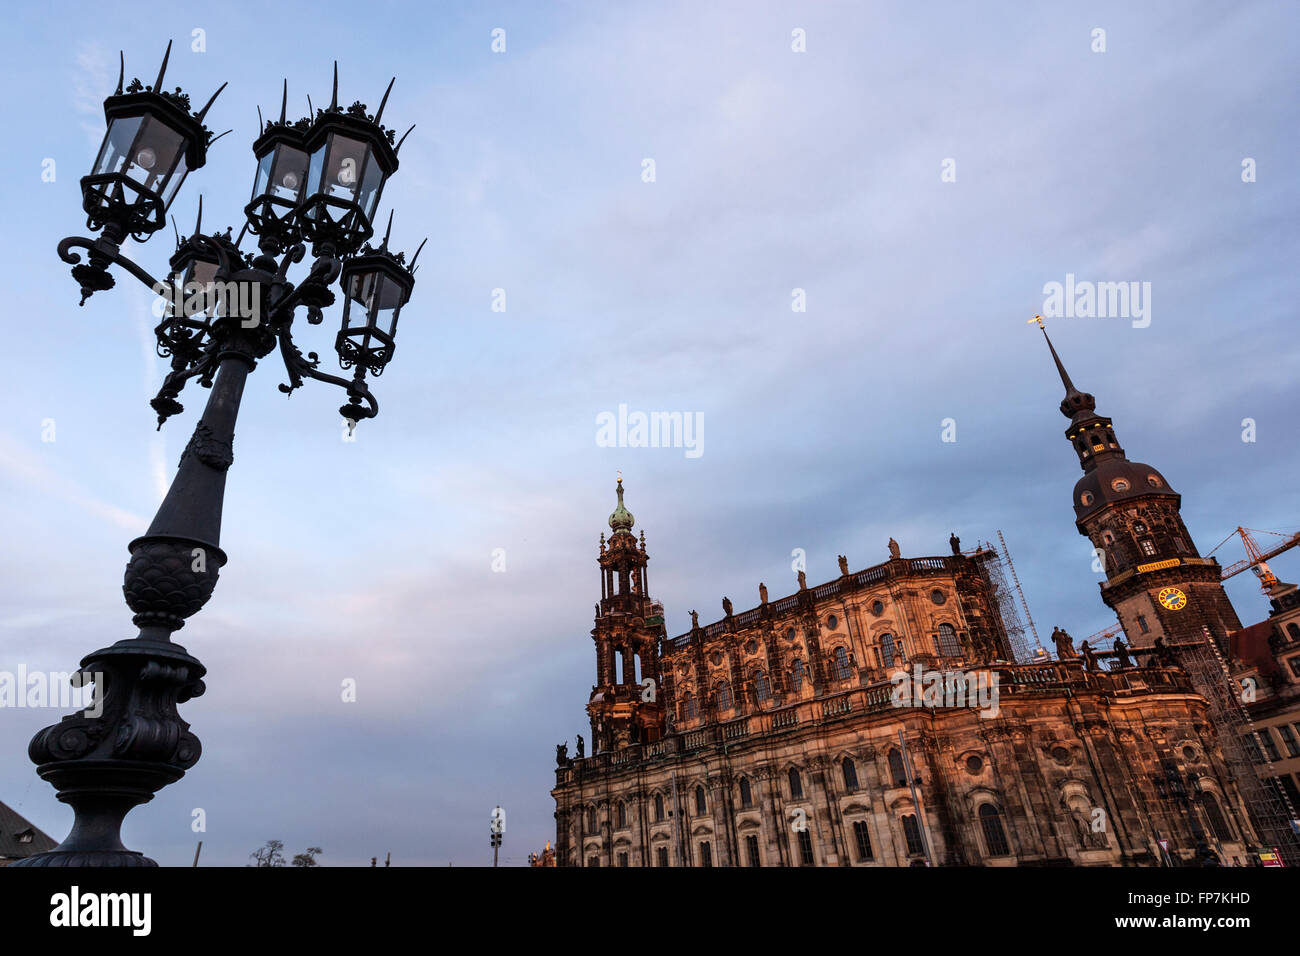 Streetlight in the Theaterplatz with Dresden Cathedral and tower Castle, Dresden, Saxony, Germany - Stock Image